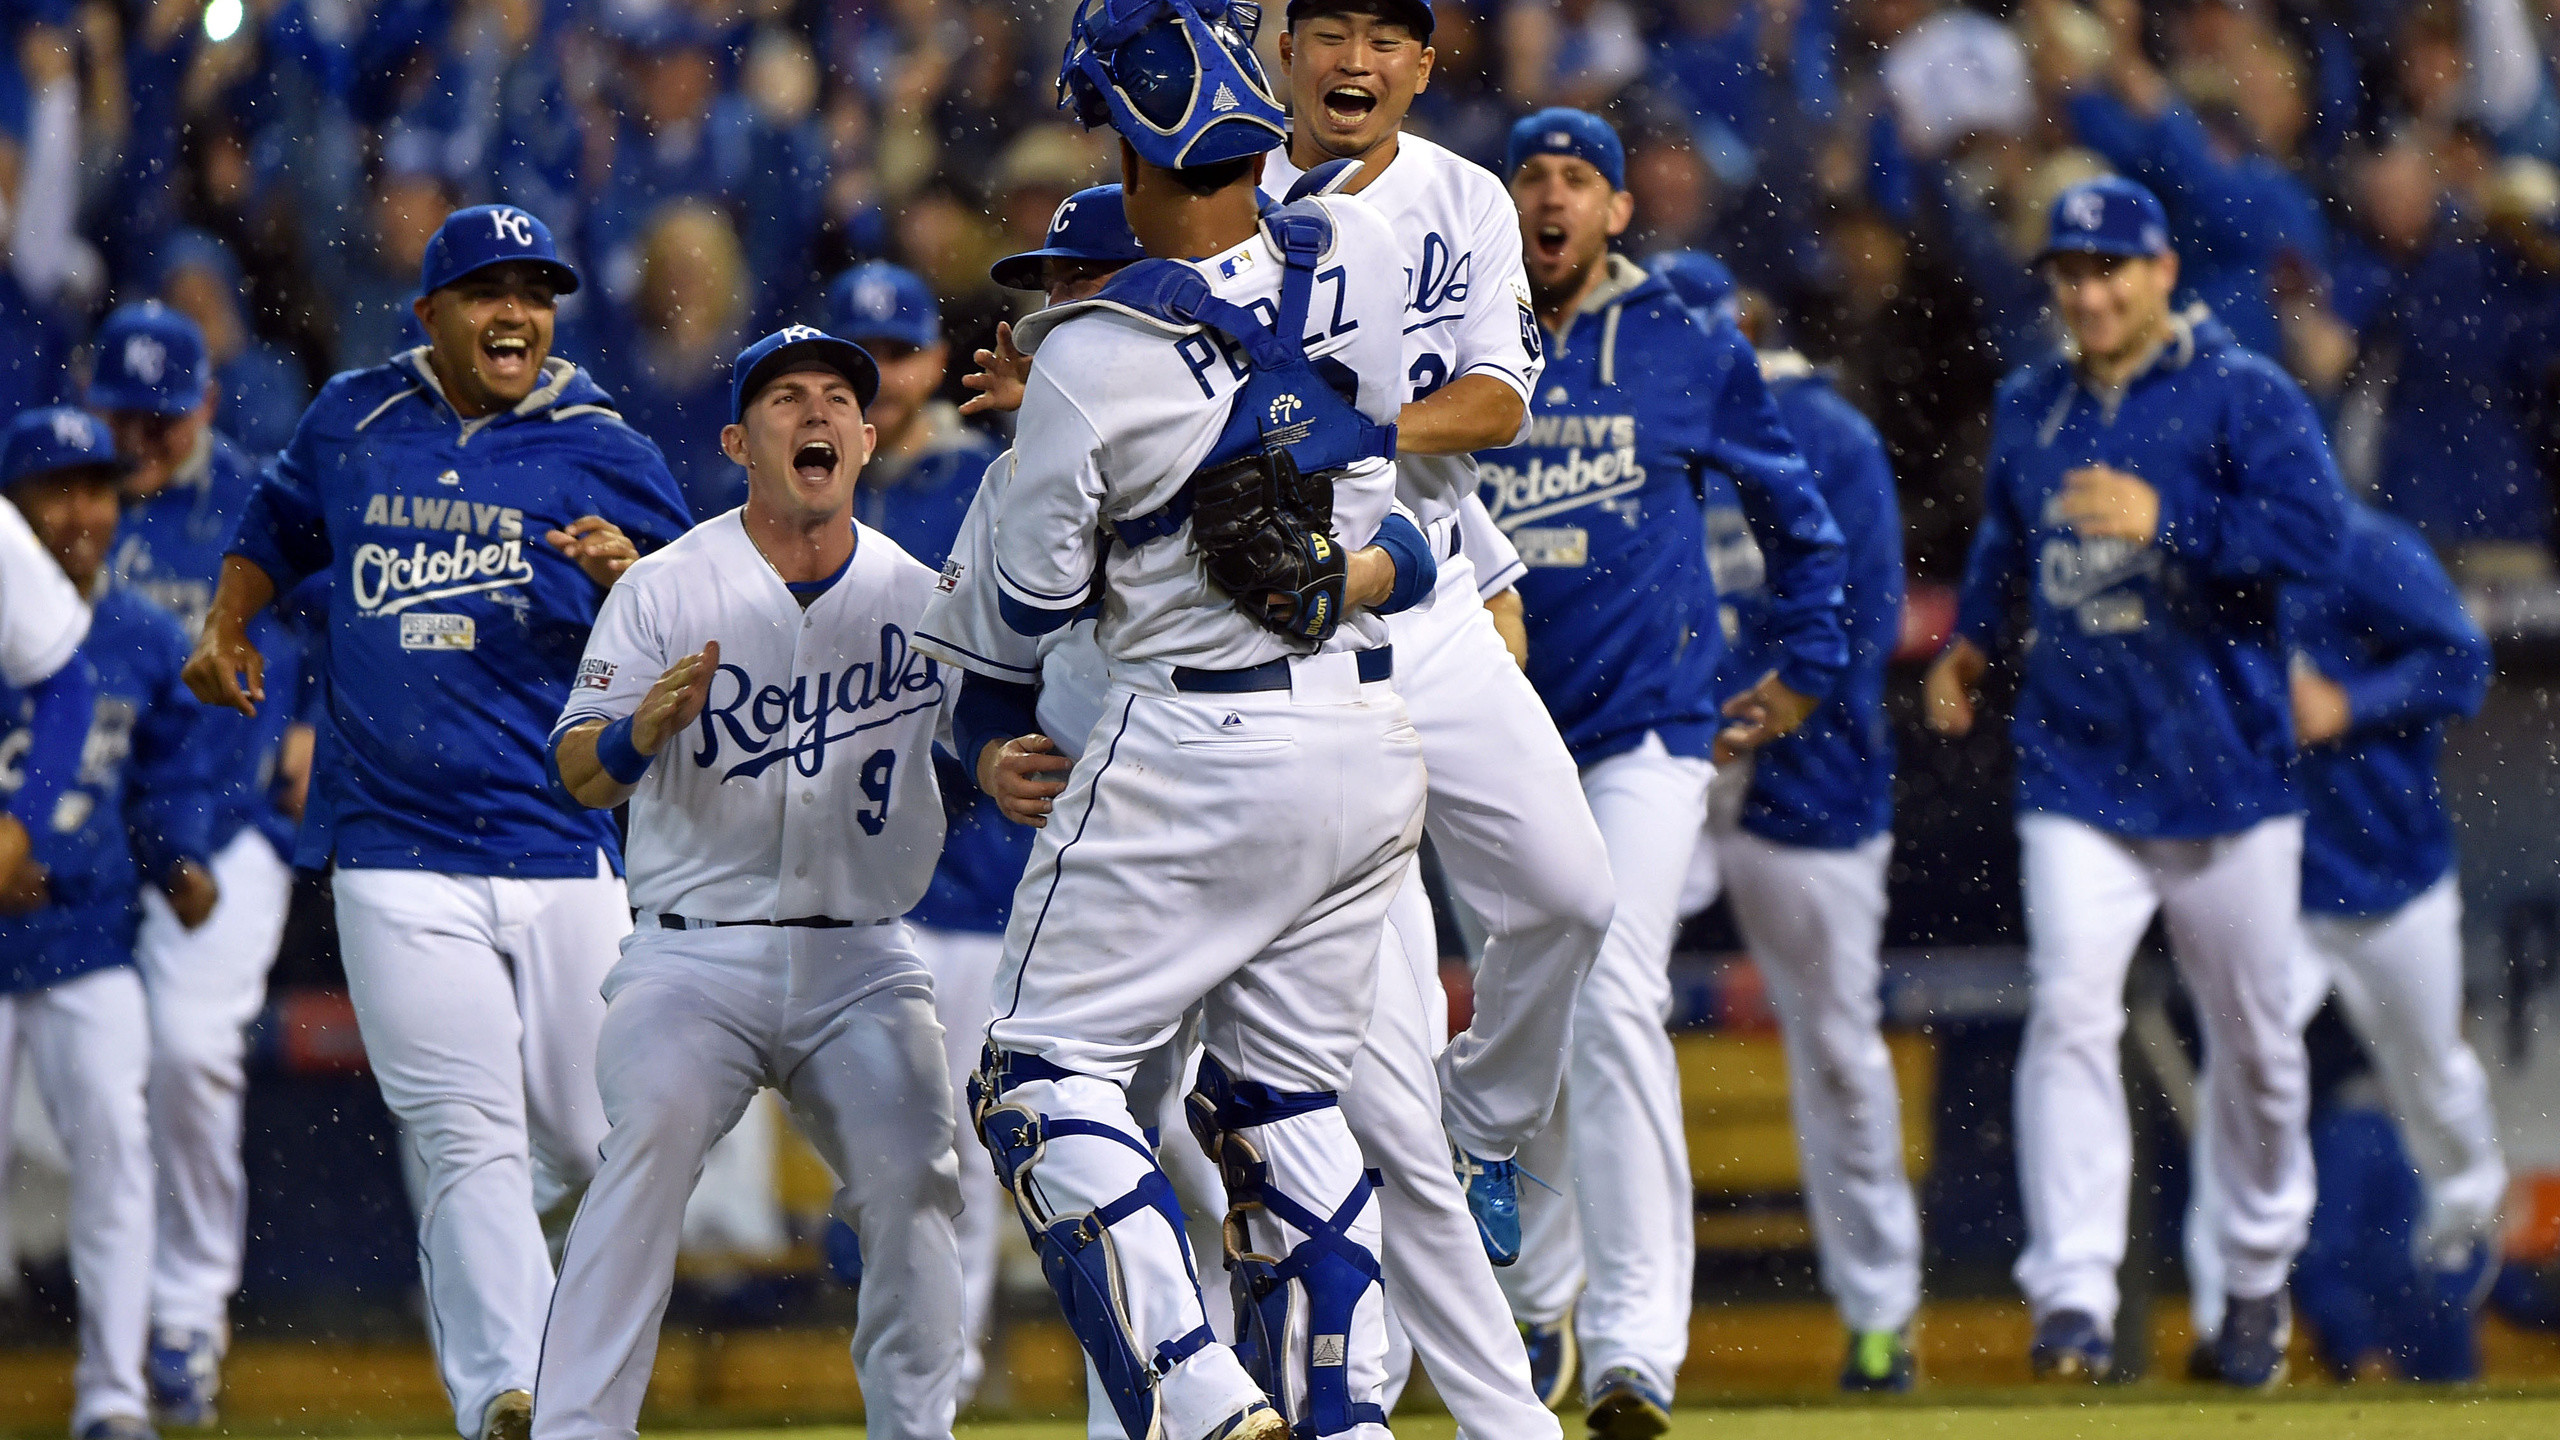 2560x1440 hd kansas city royals images background photos smart phone background  photos free images widescreen high quality artworks dual monitors colourful  2560×1440 ...